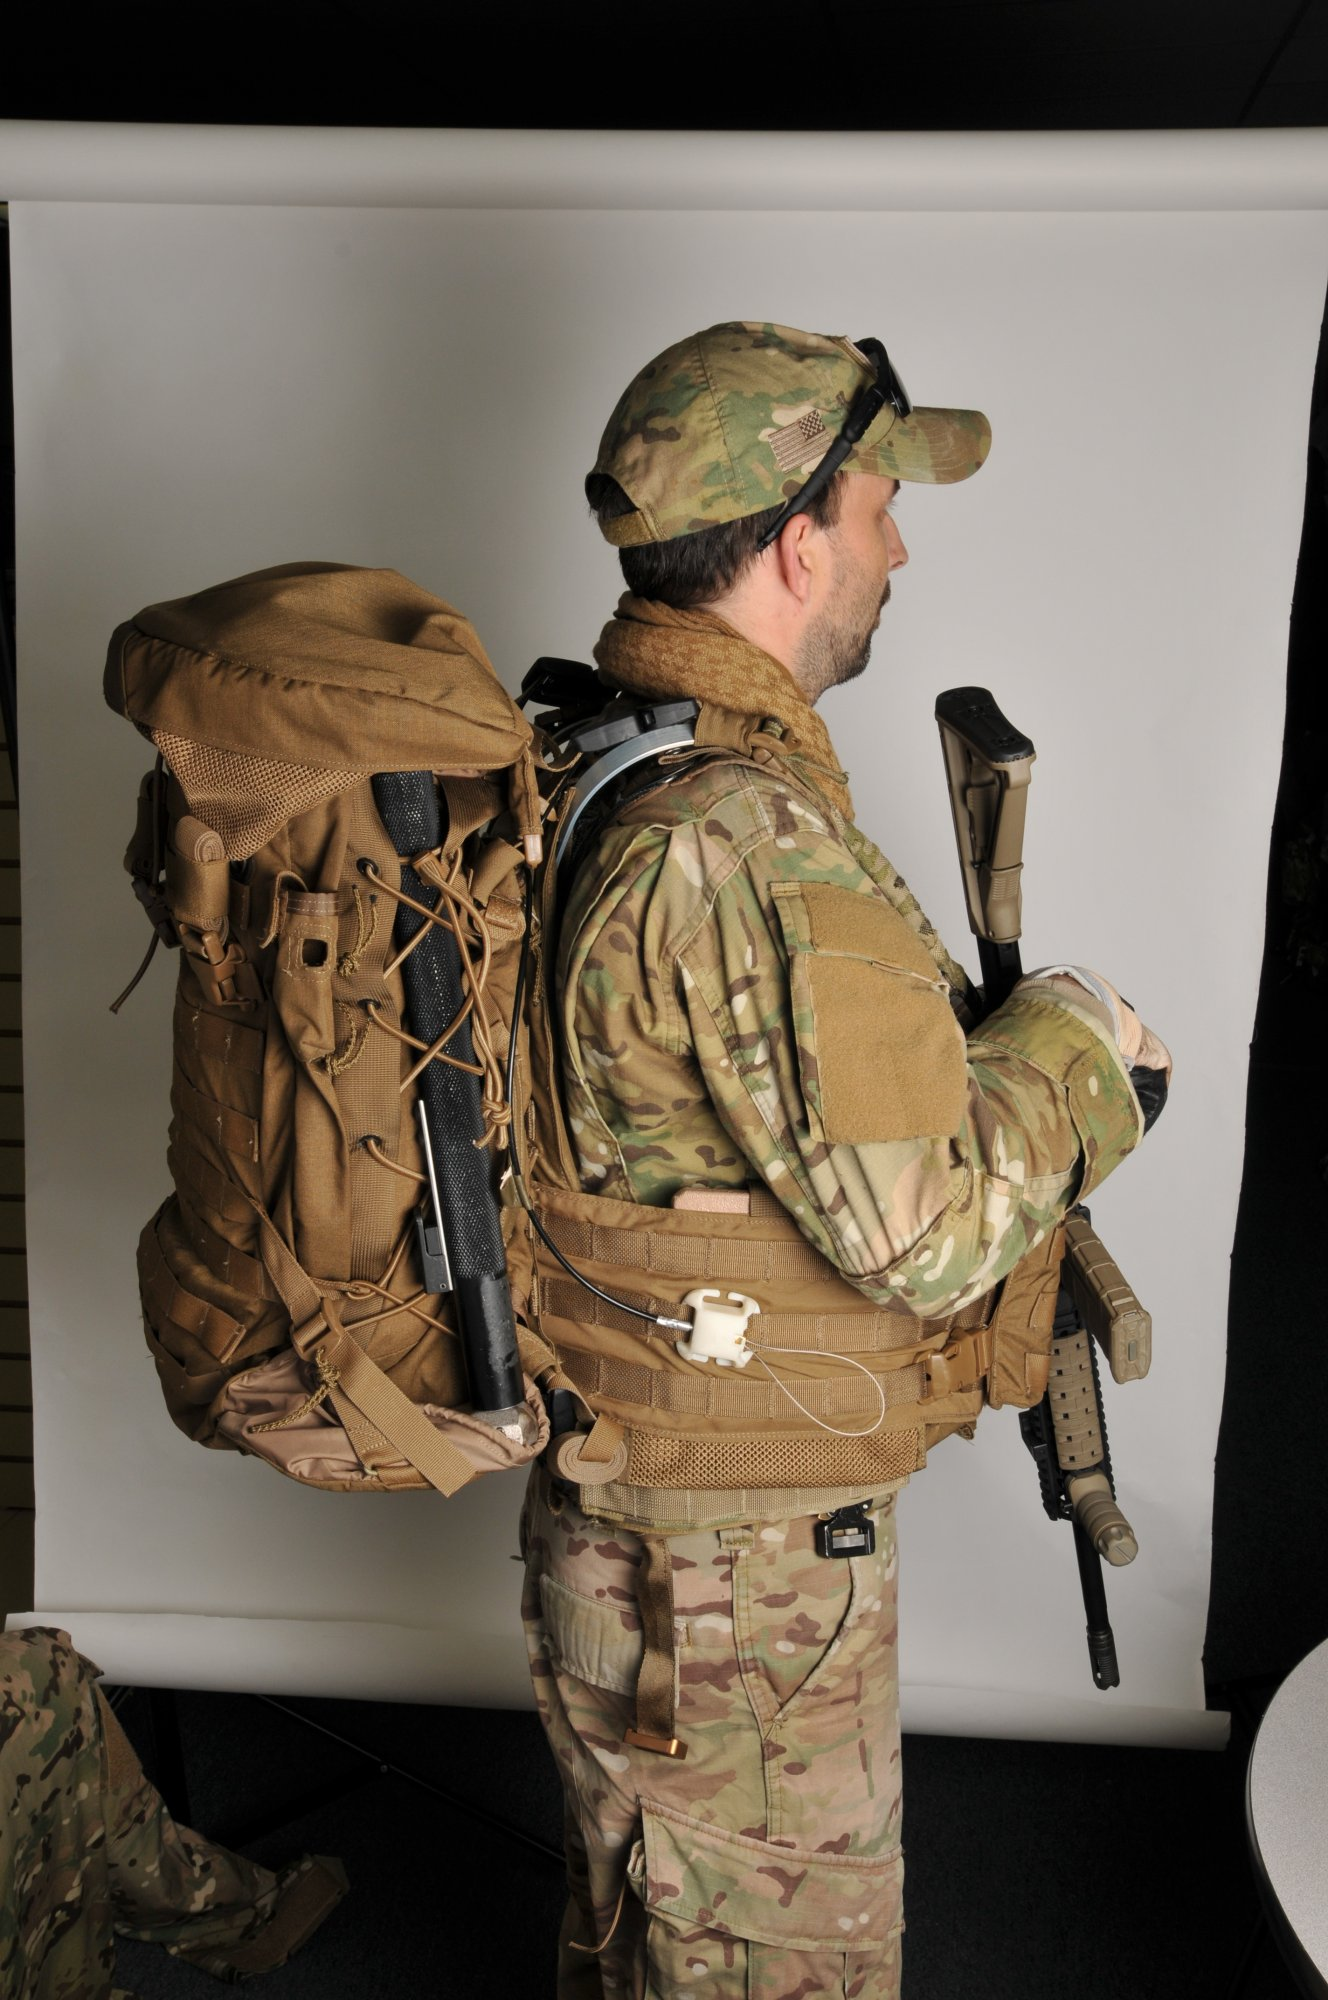 Archangel Armor Internal Frame Load Bearing System IFLBS Version 5 Tactical Armor Plate Carrier System Paul Carter Photo 2 <!  :en  >Archangel Armor Internal Frame Load Bearing System (IFLBS) Version 5 Tactical Armor Plate Carrier/Tactical Vest System: Lighten your load when youre in combat mode!<!  :  >